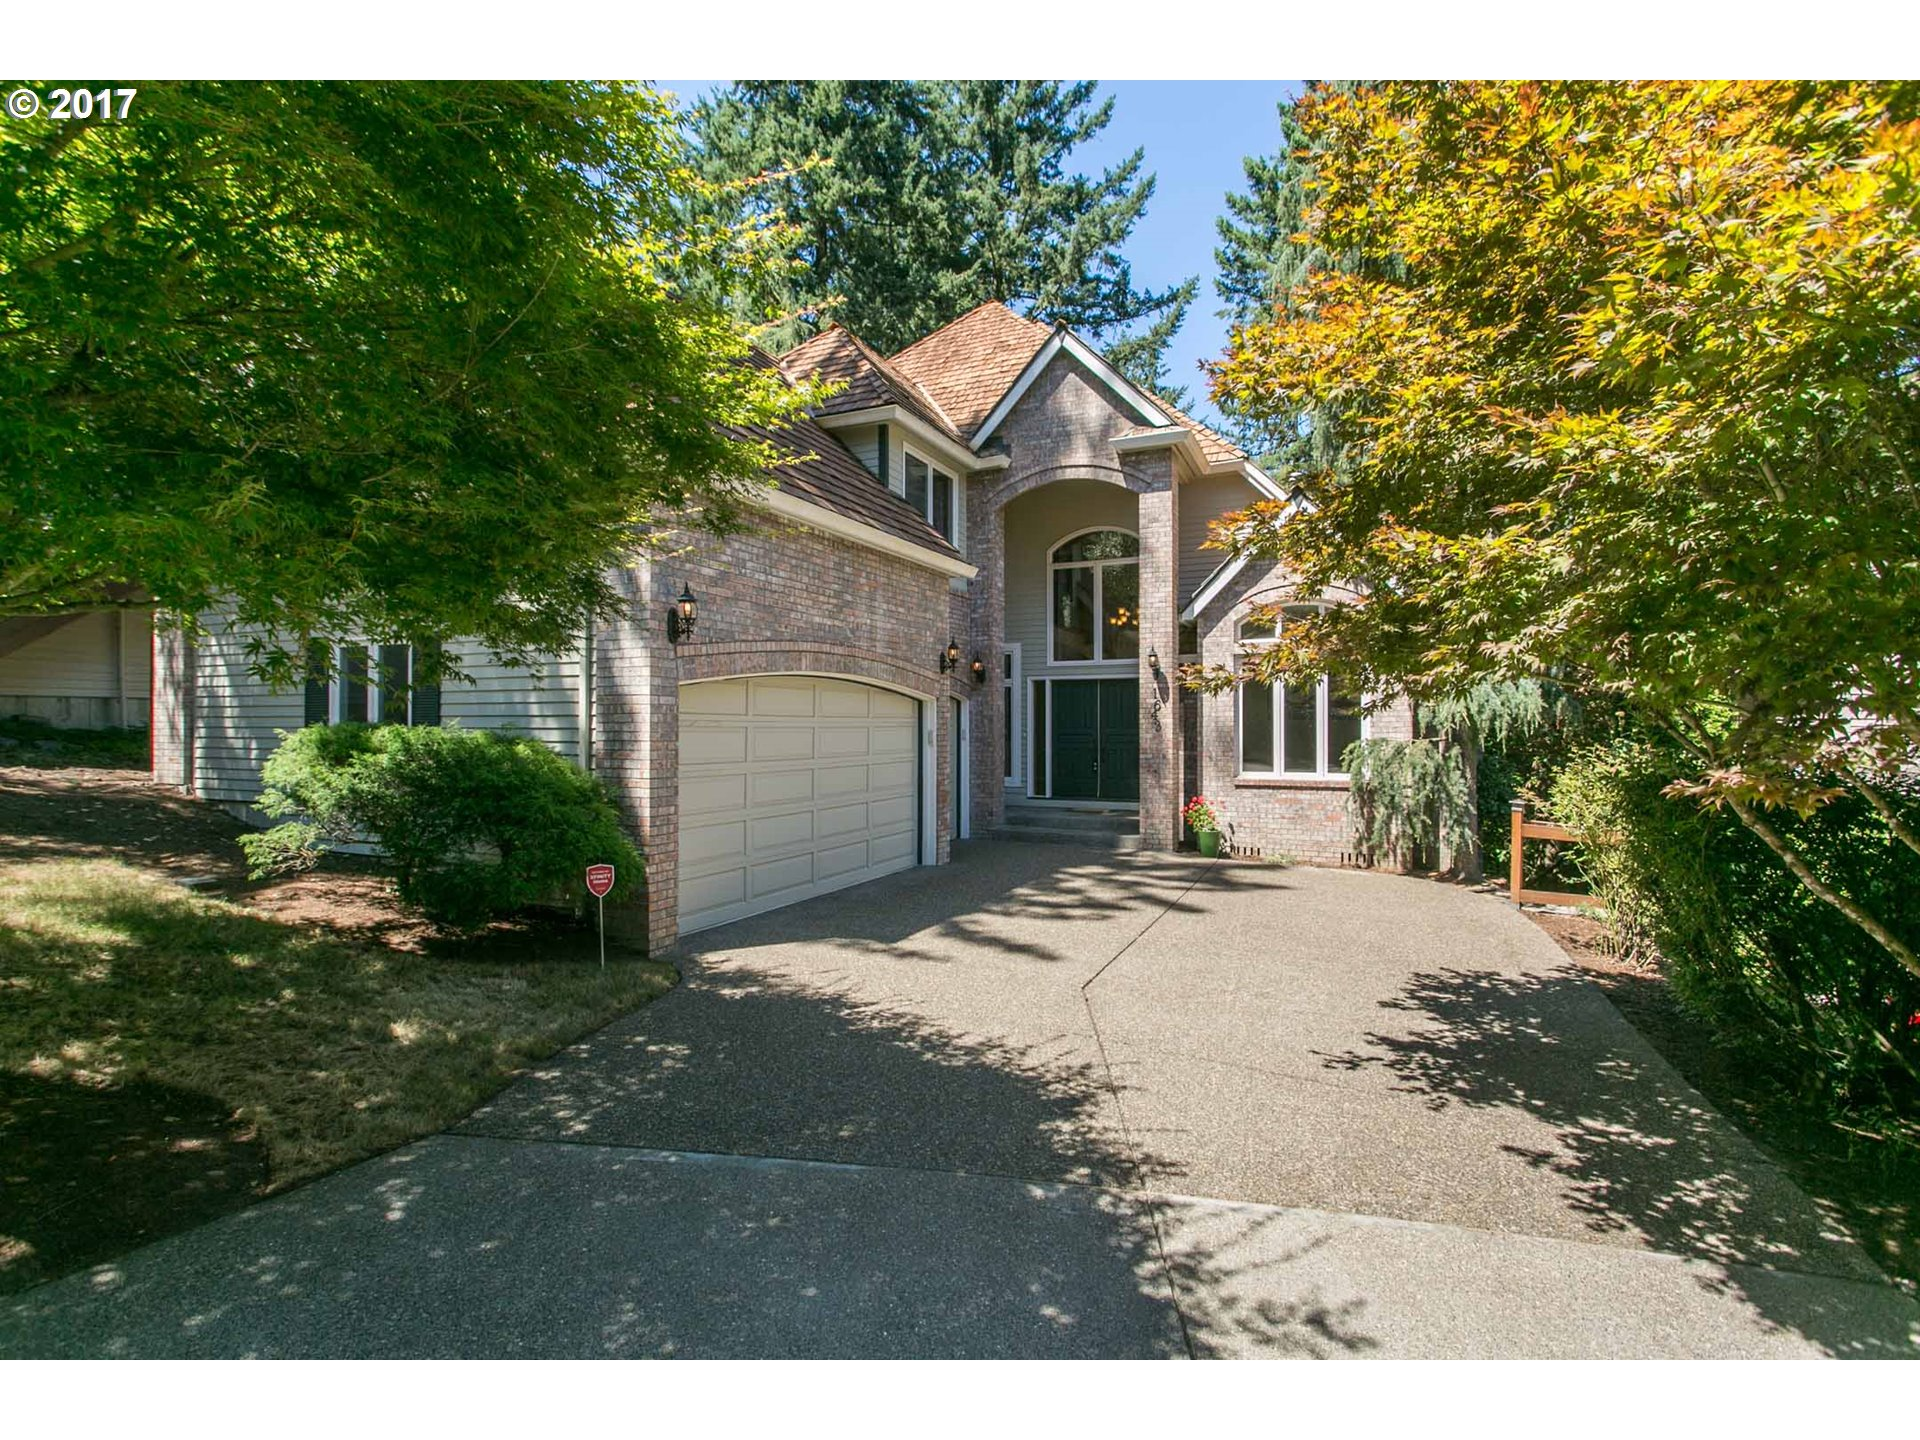 1643 VILLAGE PARK LN, Lake Oswego, OR 97034